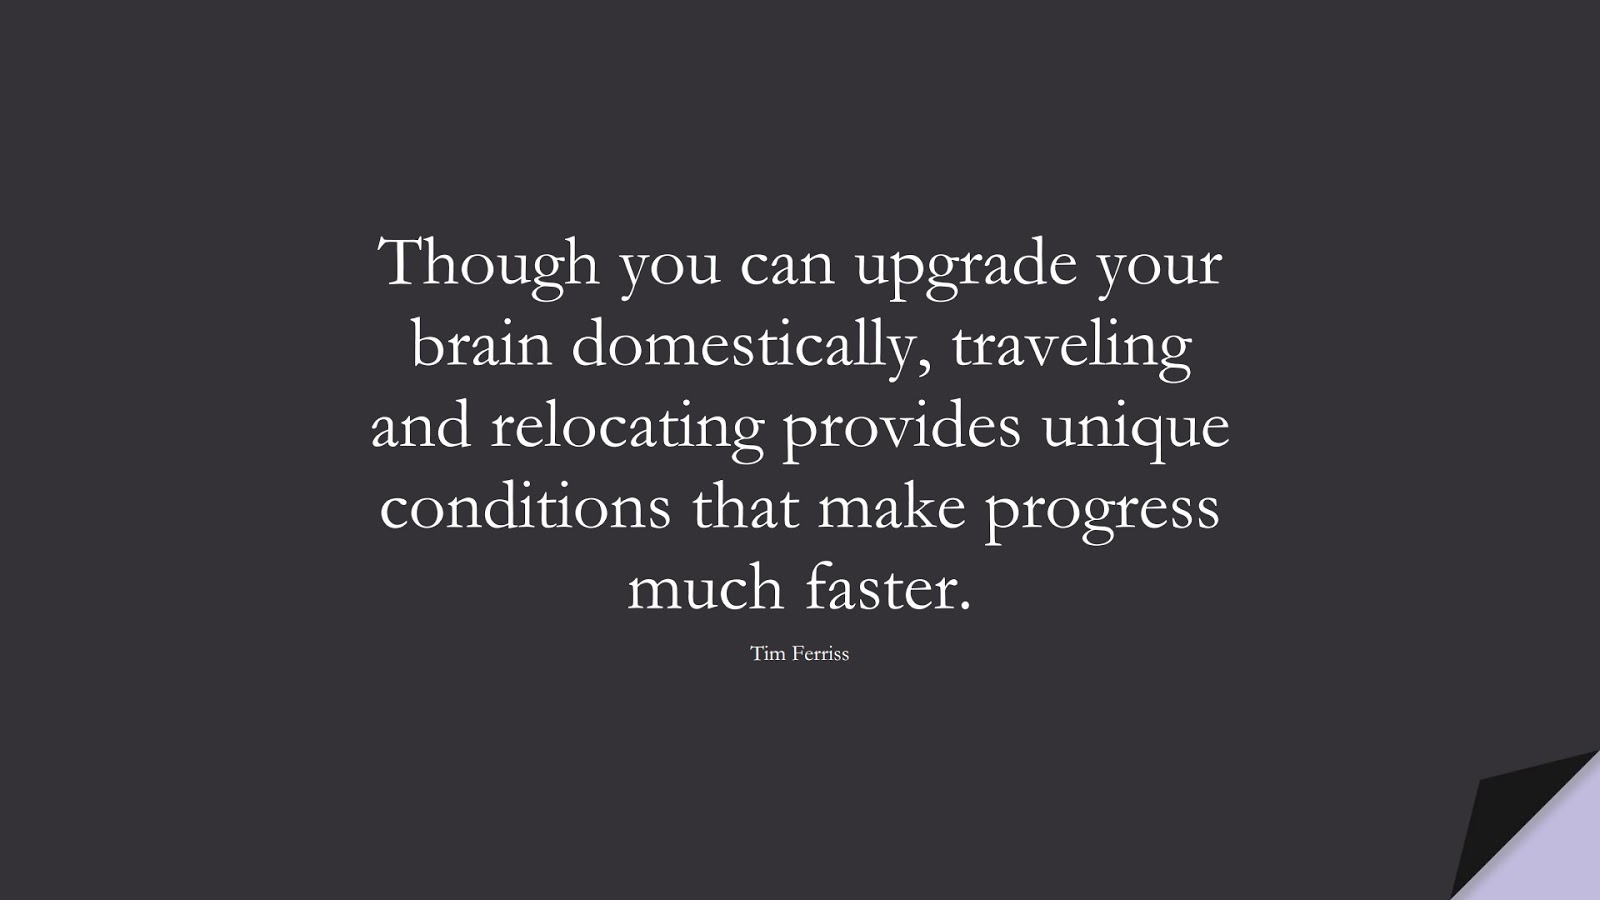 Though you can upgrade your brain domestically, traveling and relocating provides unique conditions that make progress much faster. (Tim Ferriss);  #TimFerrissQuotes